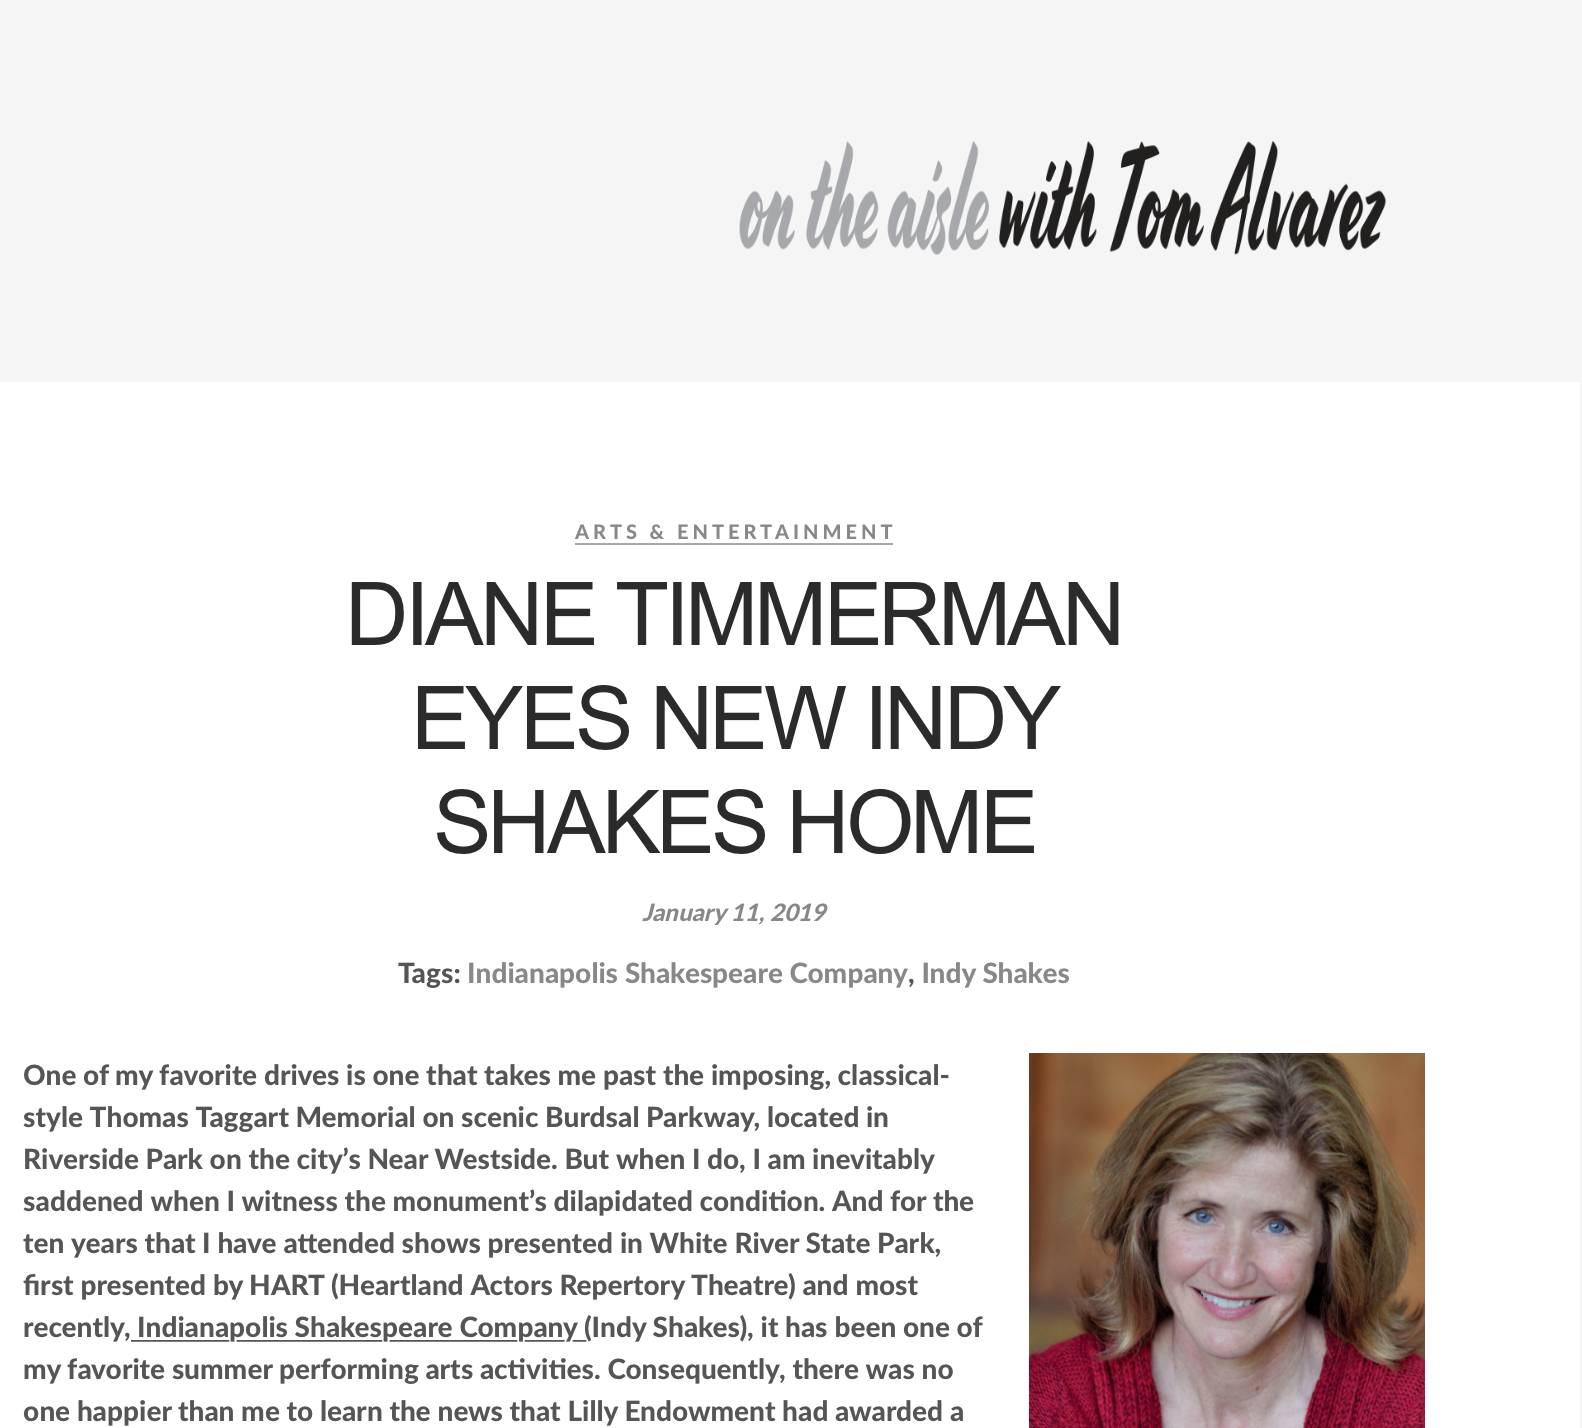 Diane Timmerman Eyes New Indy Shakes Home - An article by Tom Alvarez on Indy Shakes' new home in Riverside Park. Click to read.